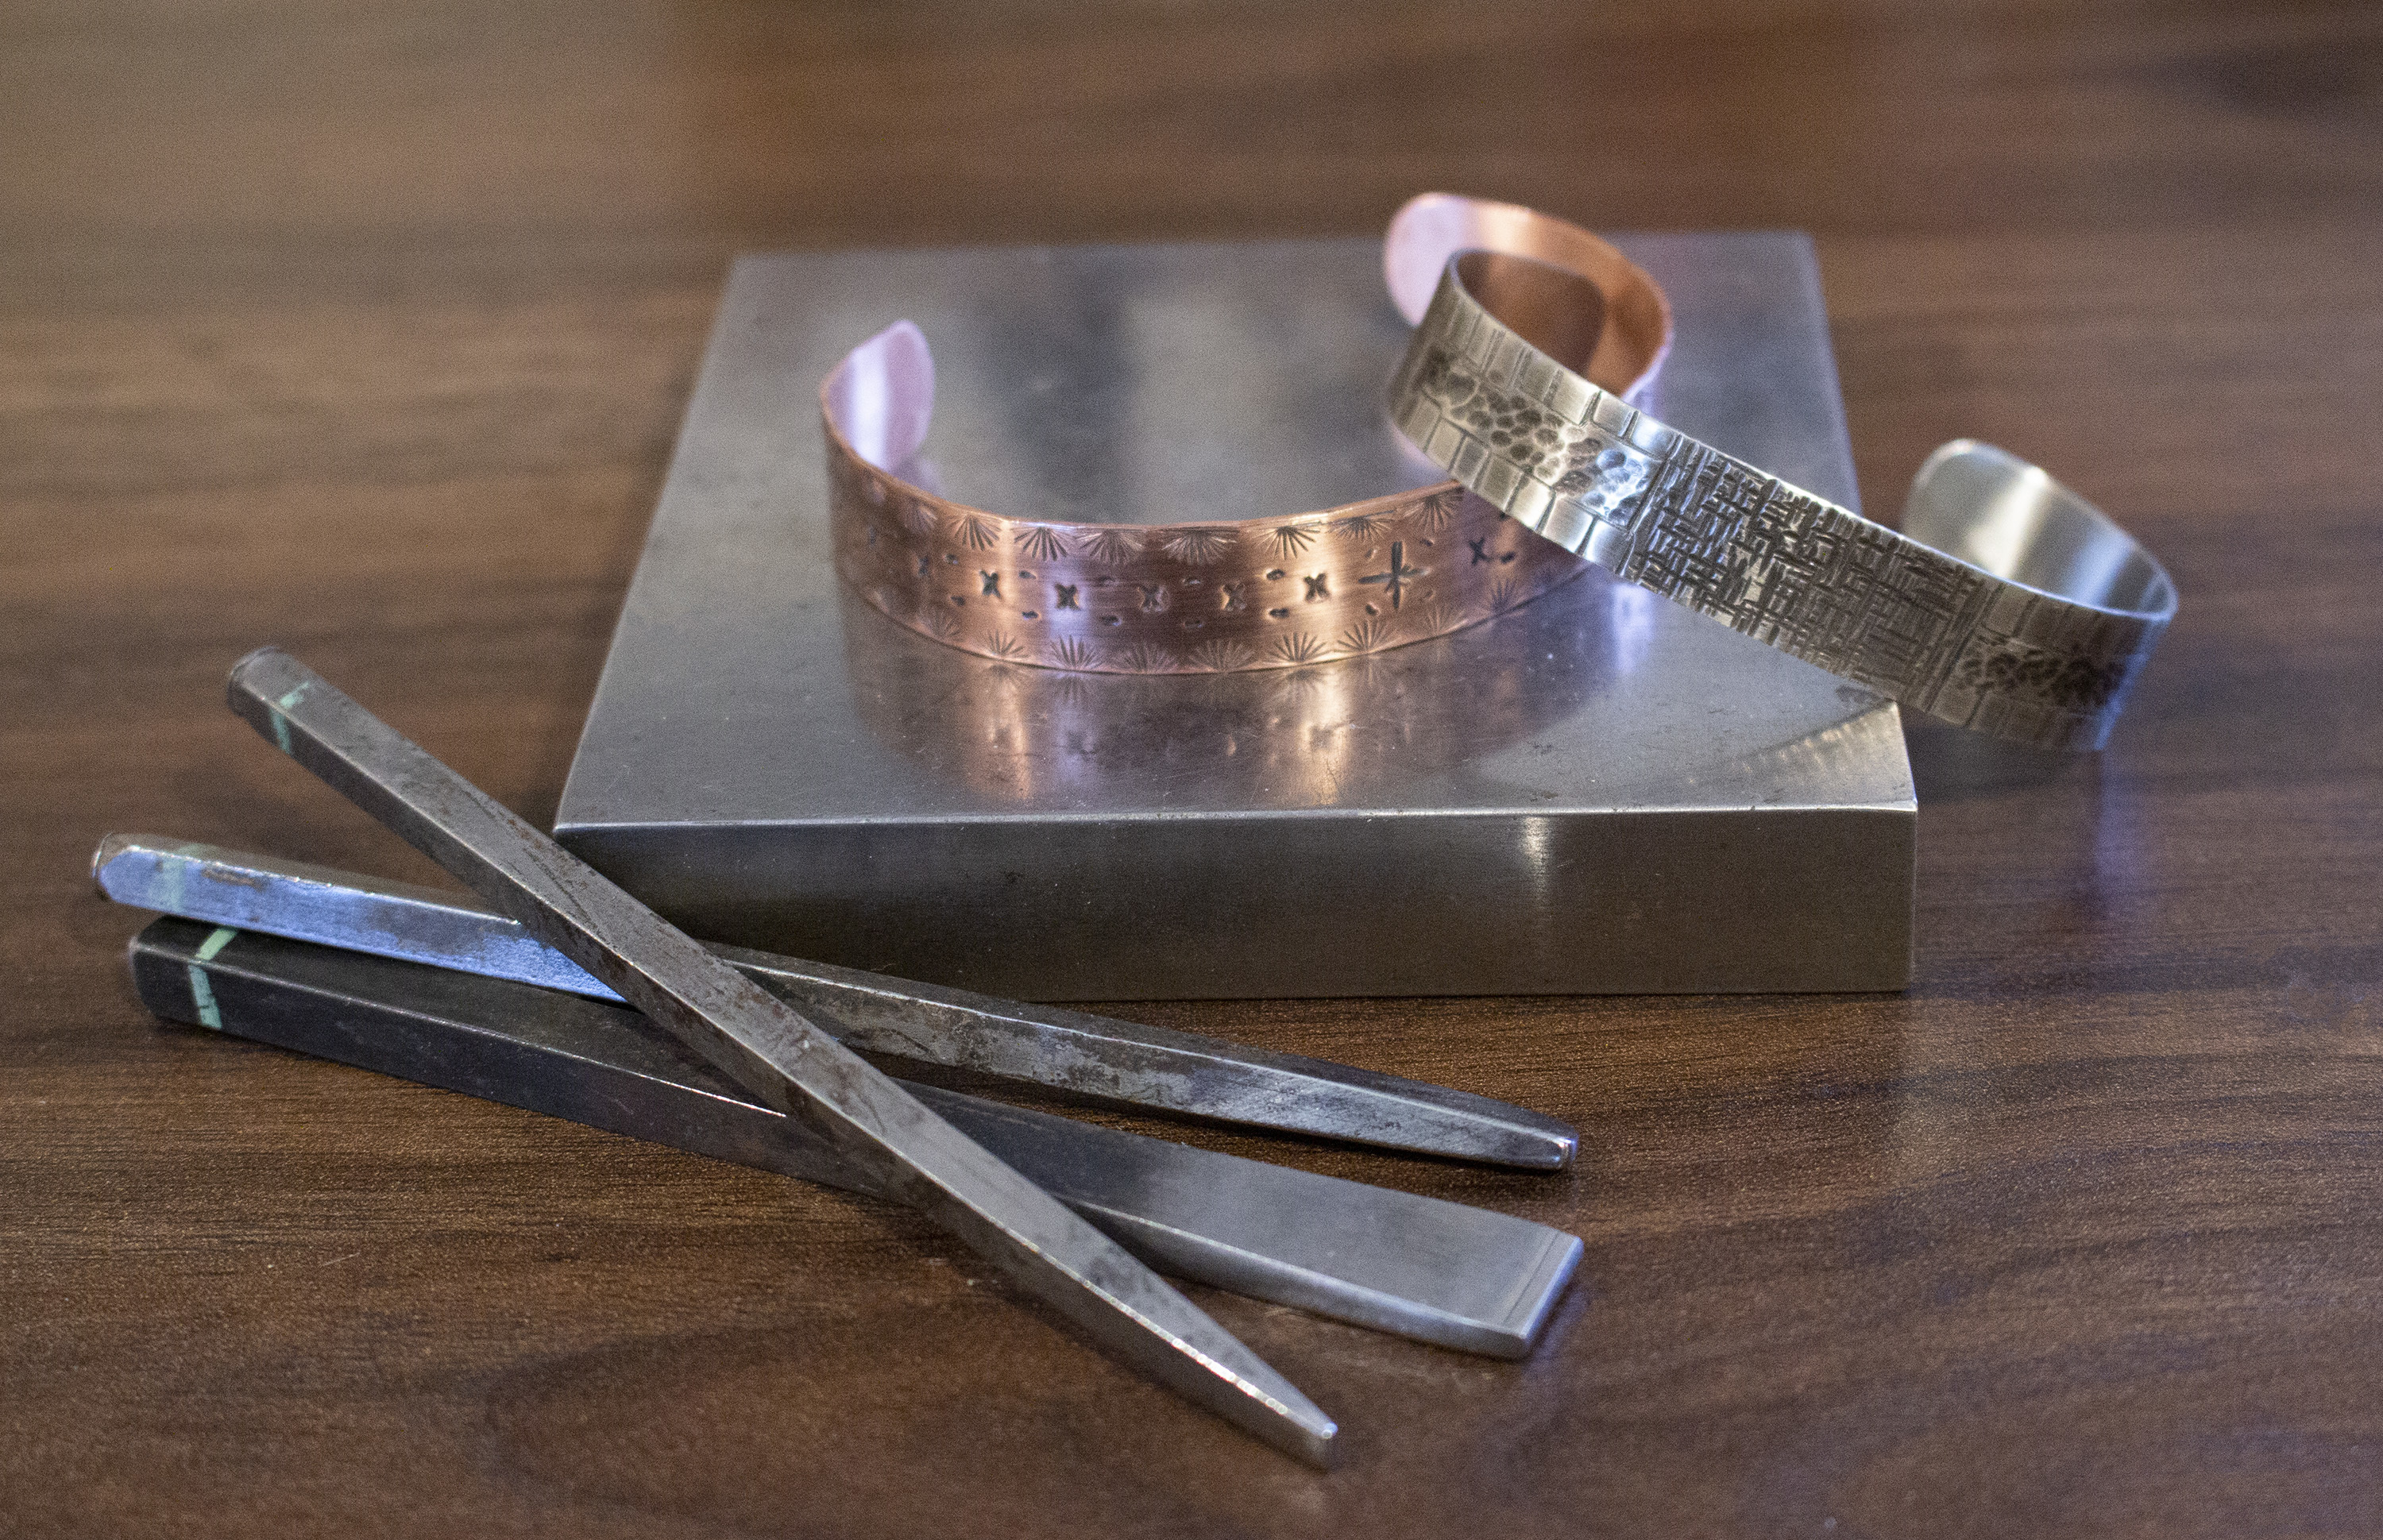 A set of decorated metal cuffs on a metal square with tools in foreground